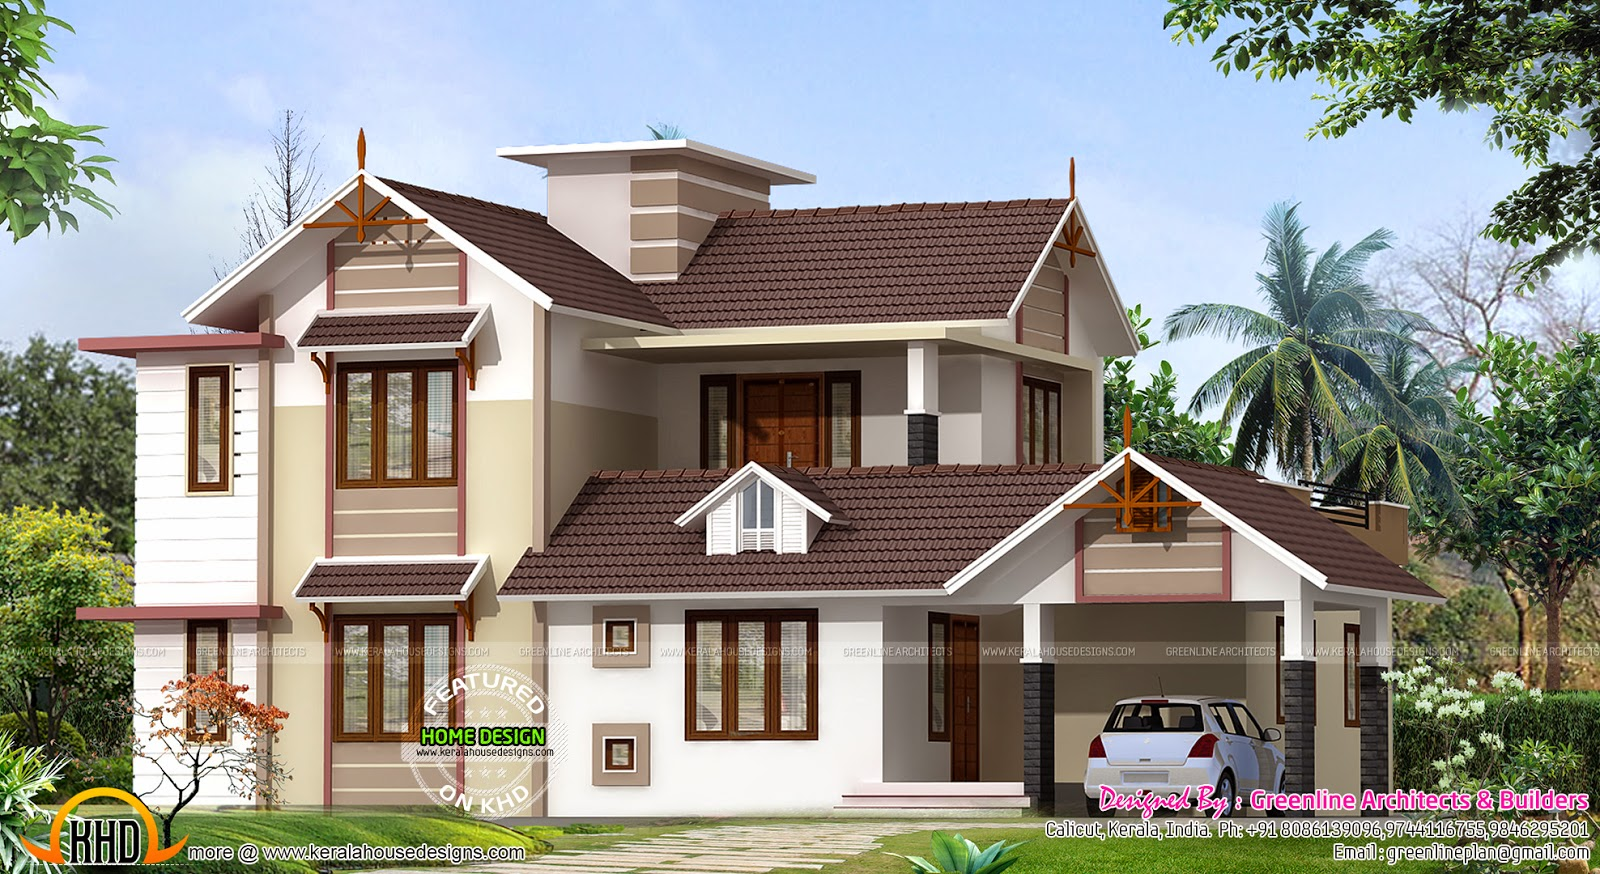 New House Design Photos Of 2400 Sq Ft New House Design Kerala Home Design And Floor